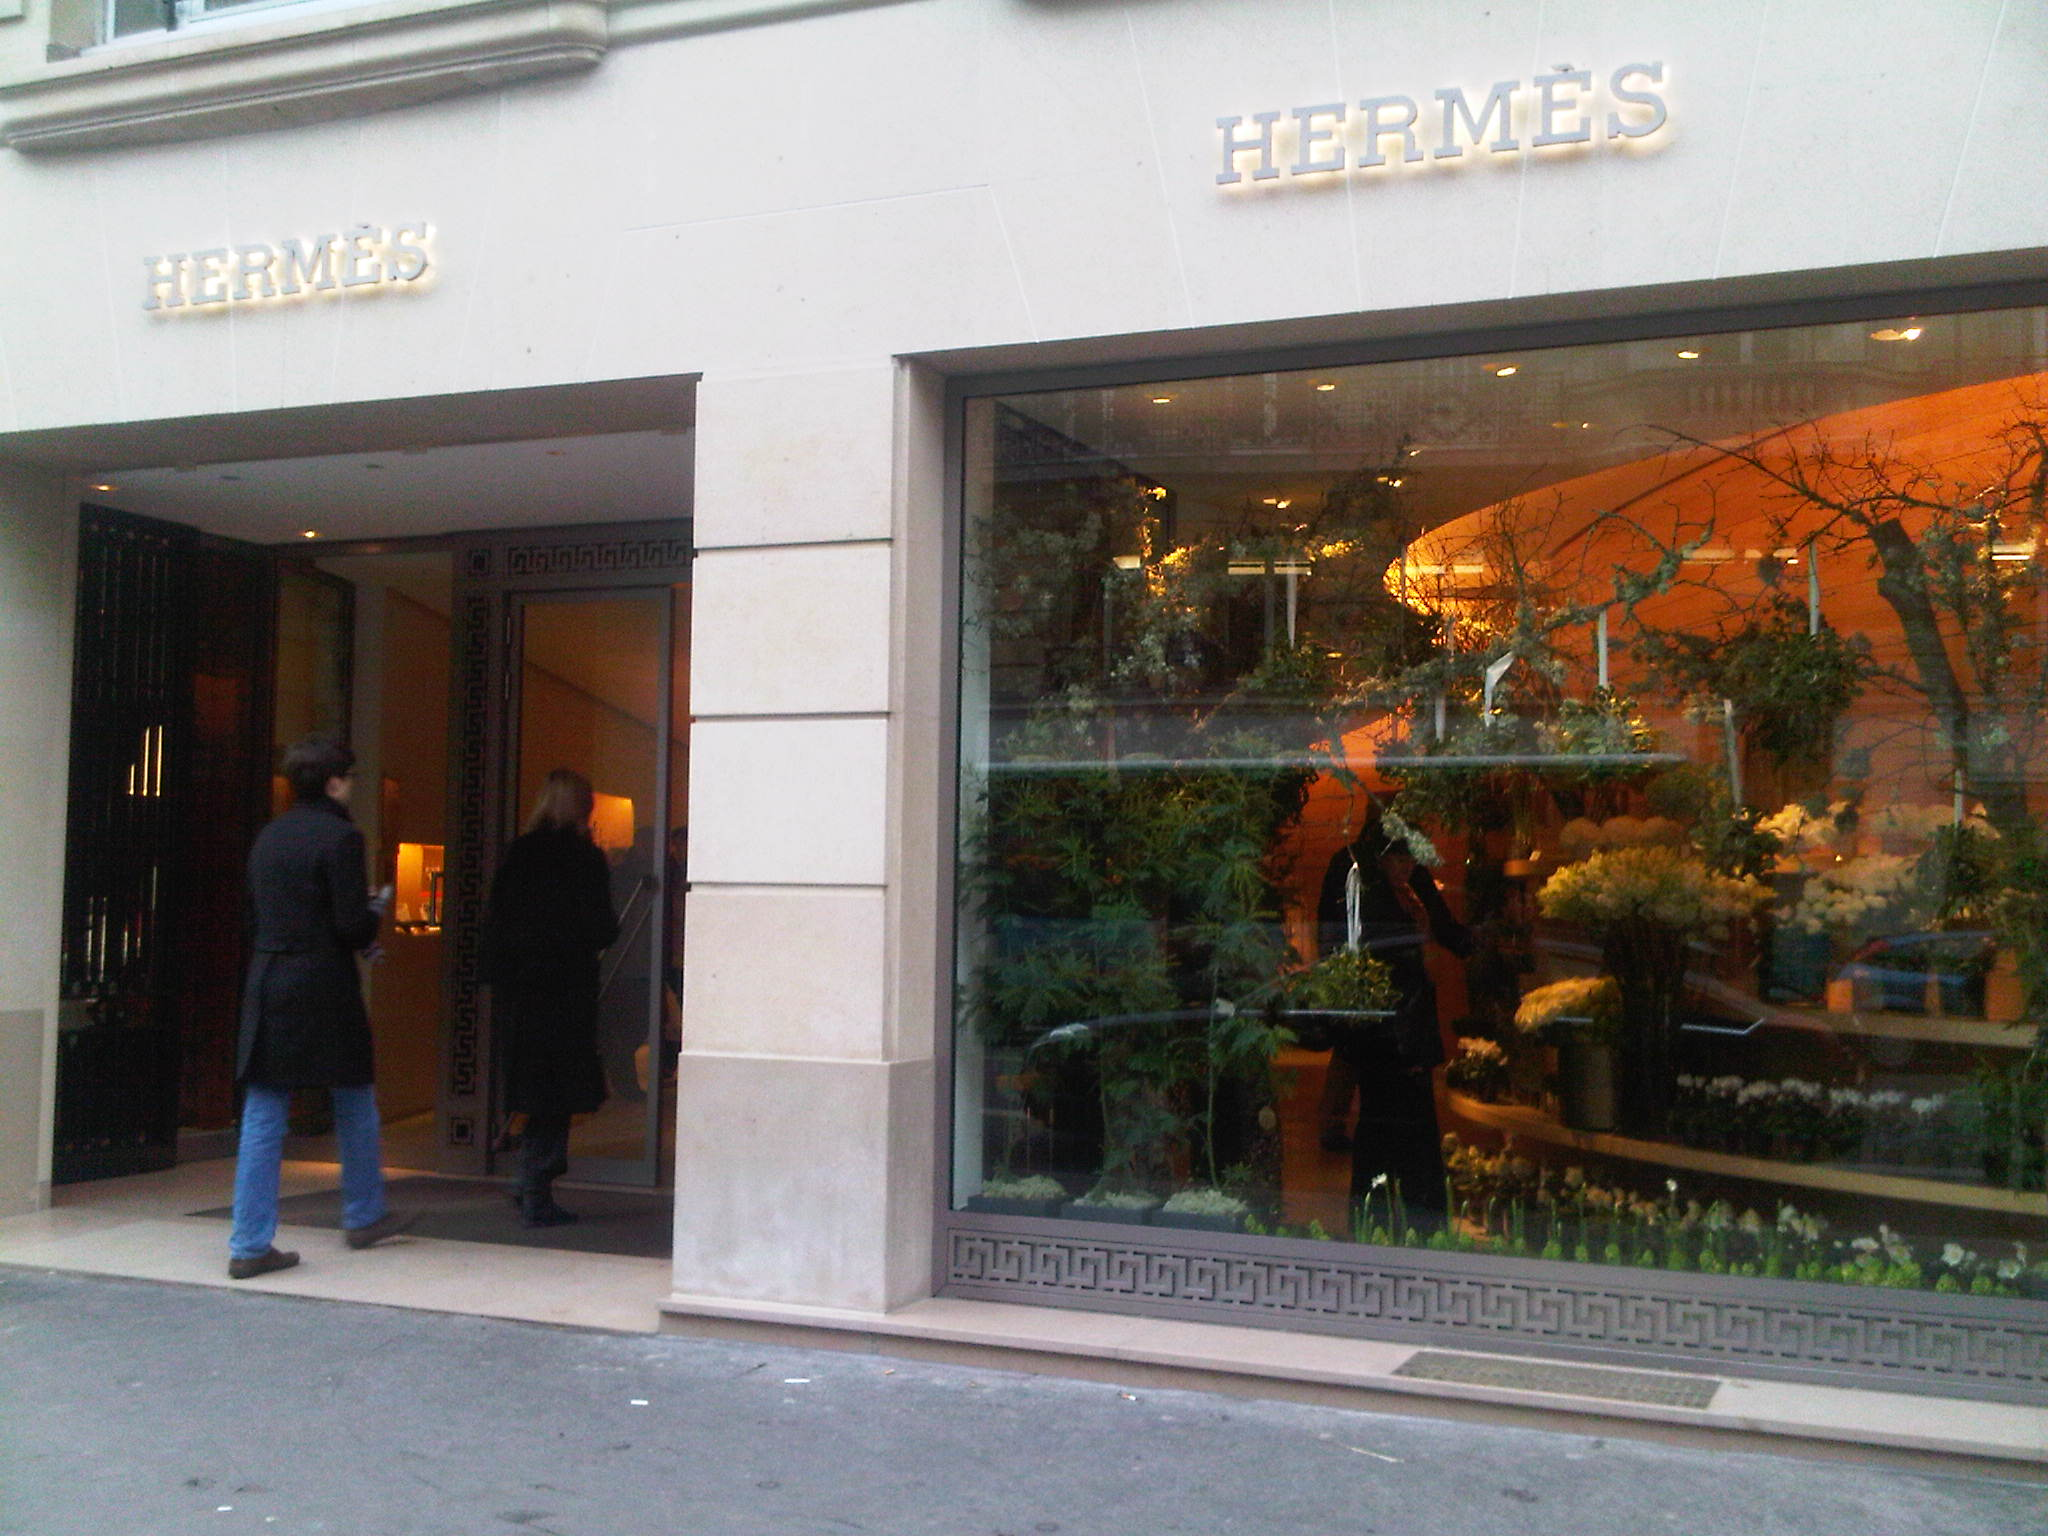 301 moved permanently - Hermes rue de sevres ...